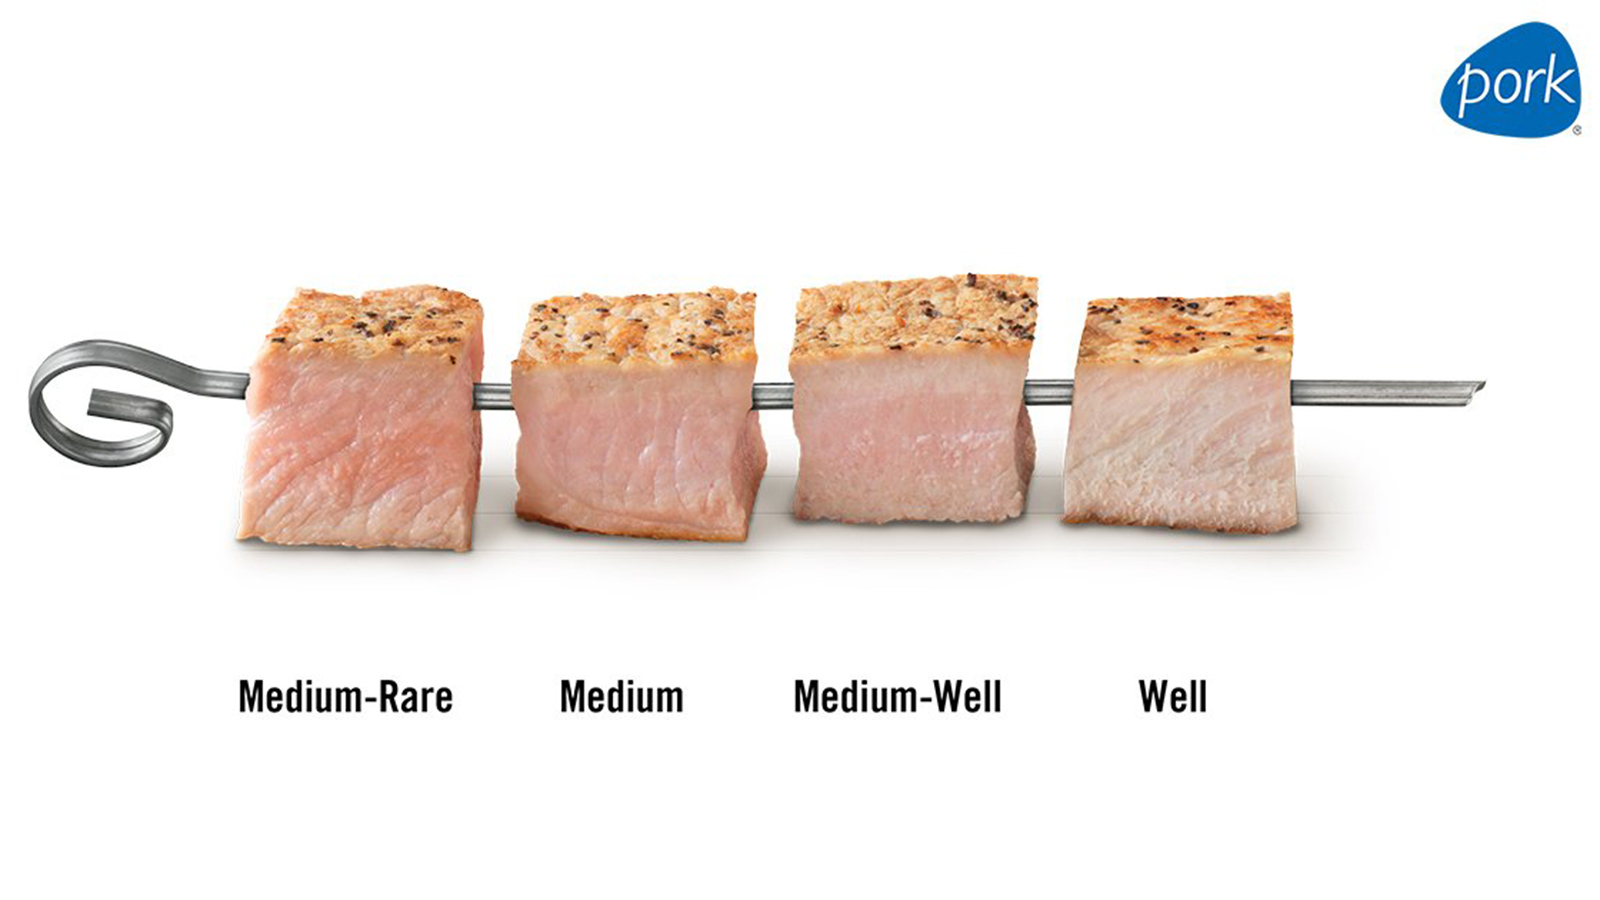 Pork Cooking Guide